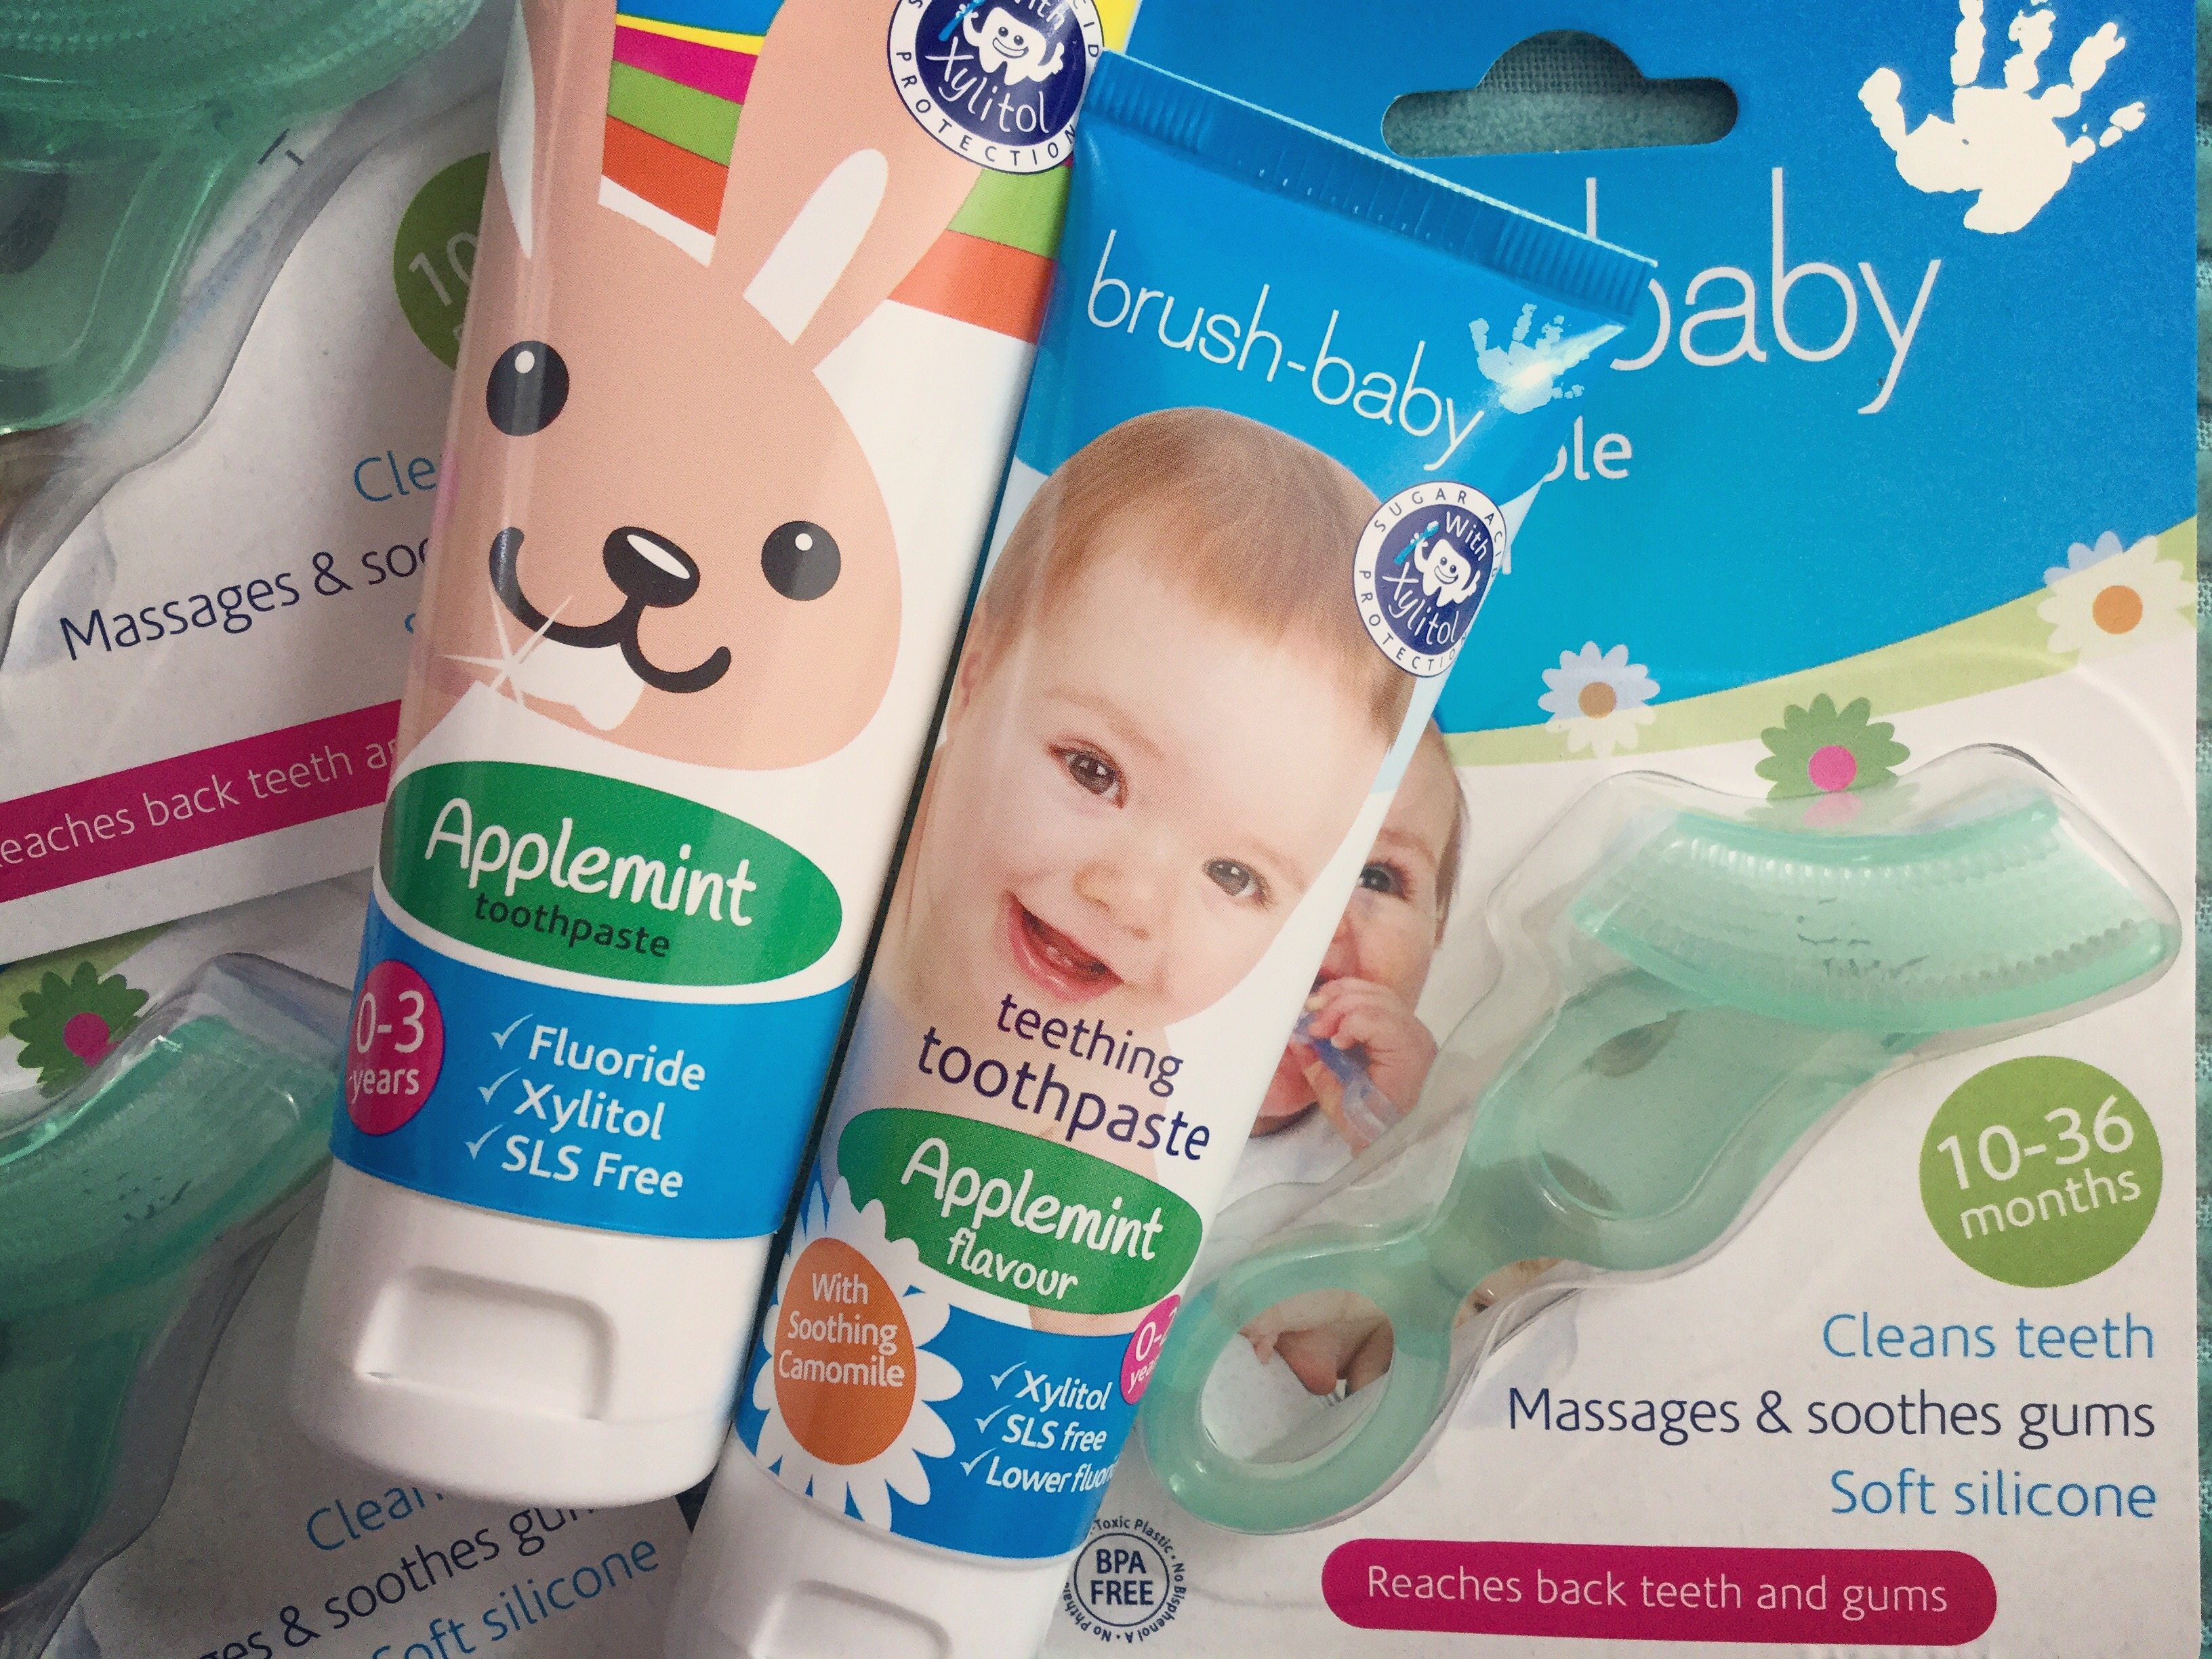 Brush Baby Chewable Toothbrush and Toddler Toothpaste in Applemint. Tested out by Frankie and the Lamb who loves the chewy brush more than his soft toys!